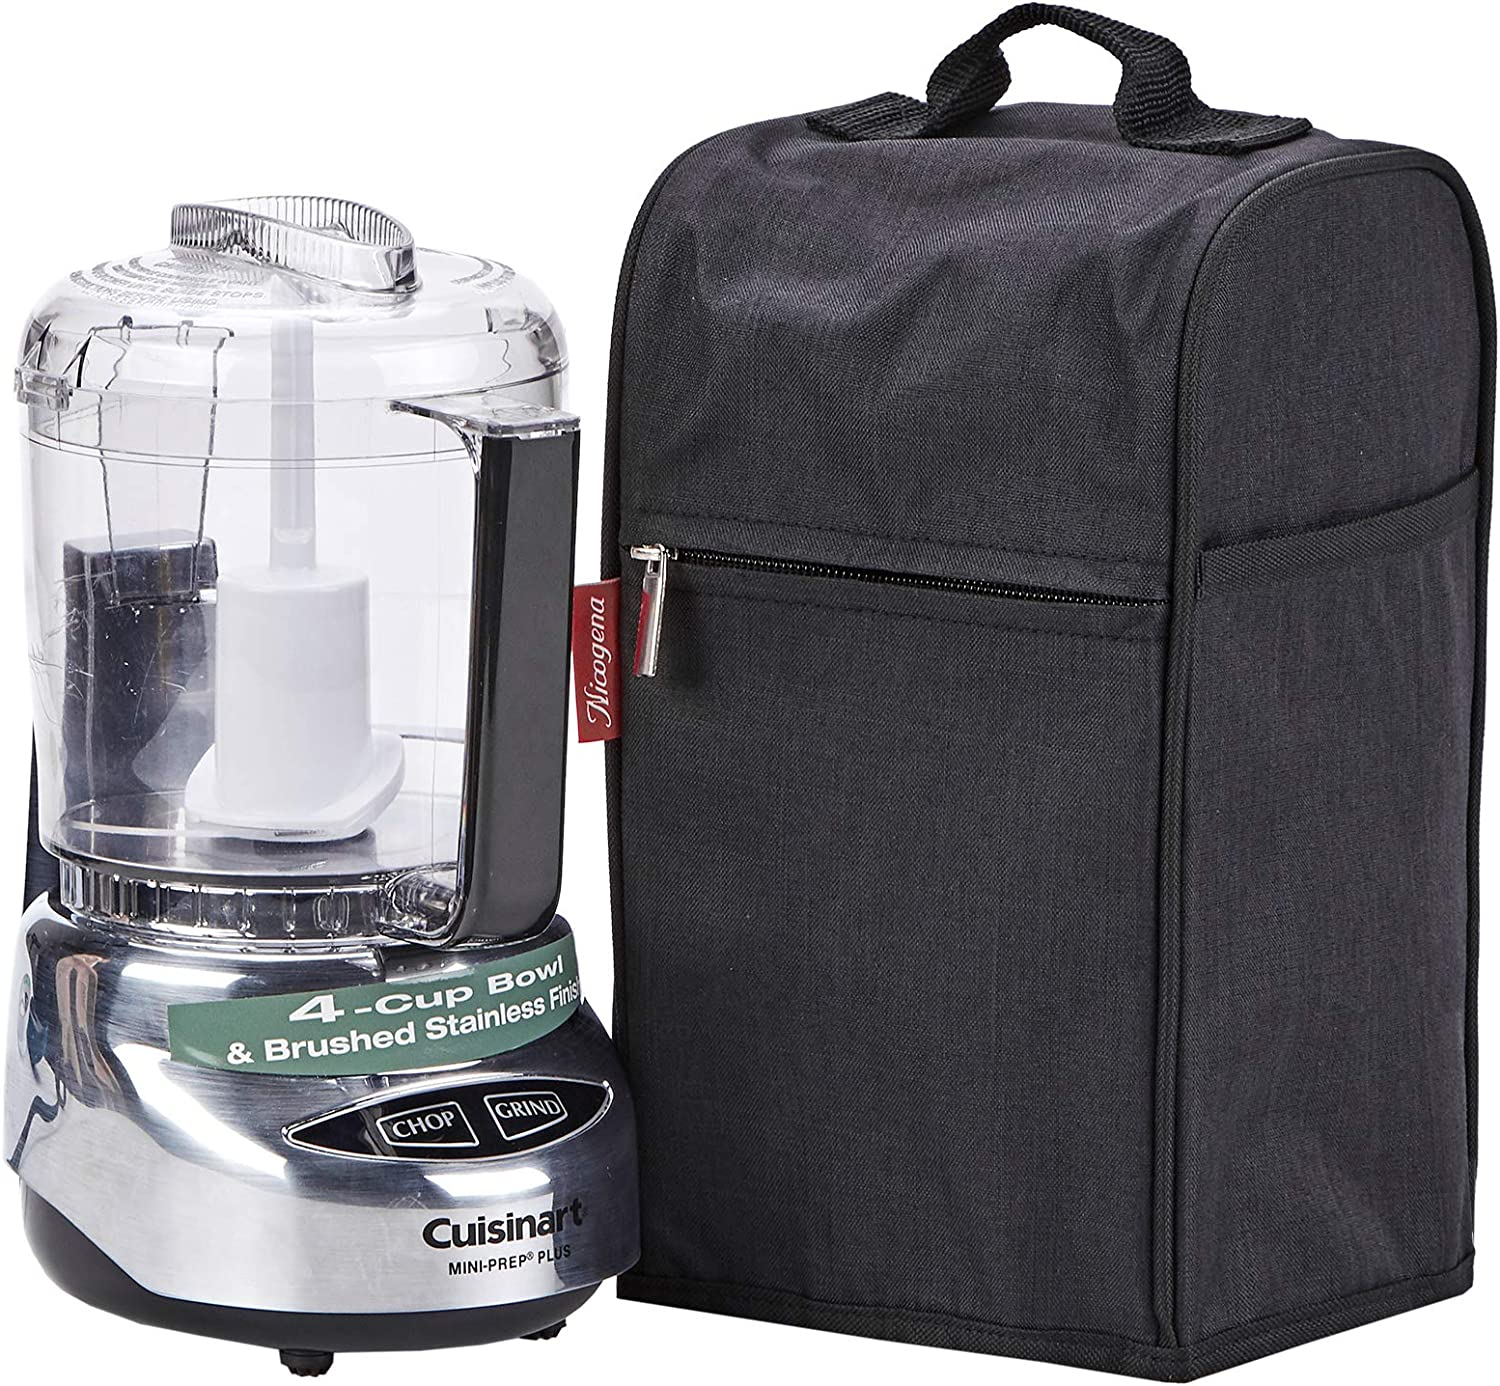 NICOGENA Food Processor Dust Cover with Accessory Pockets Compatible with Cuisinart Custom 3-4 Cup, Black (Dust Cover Only)